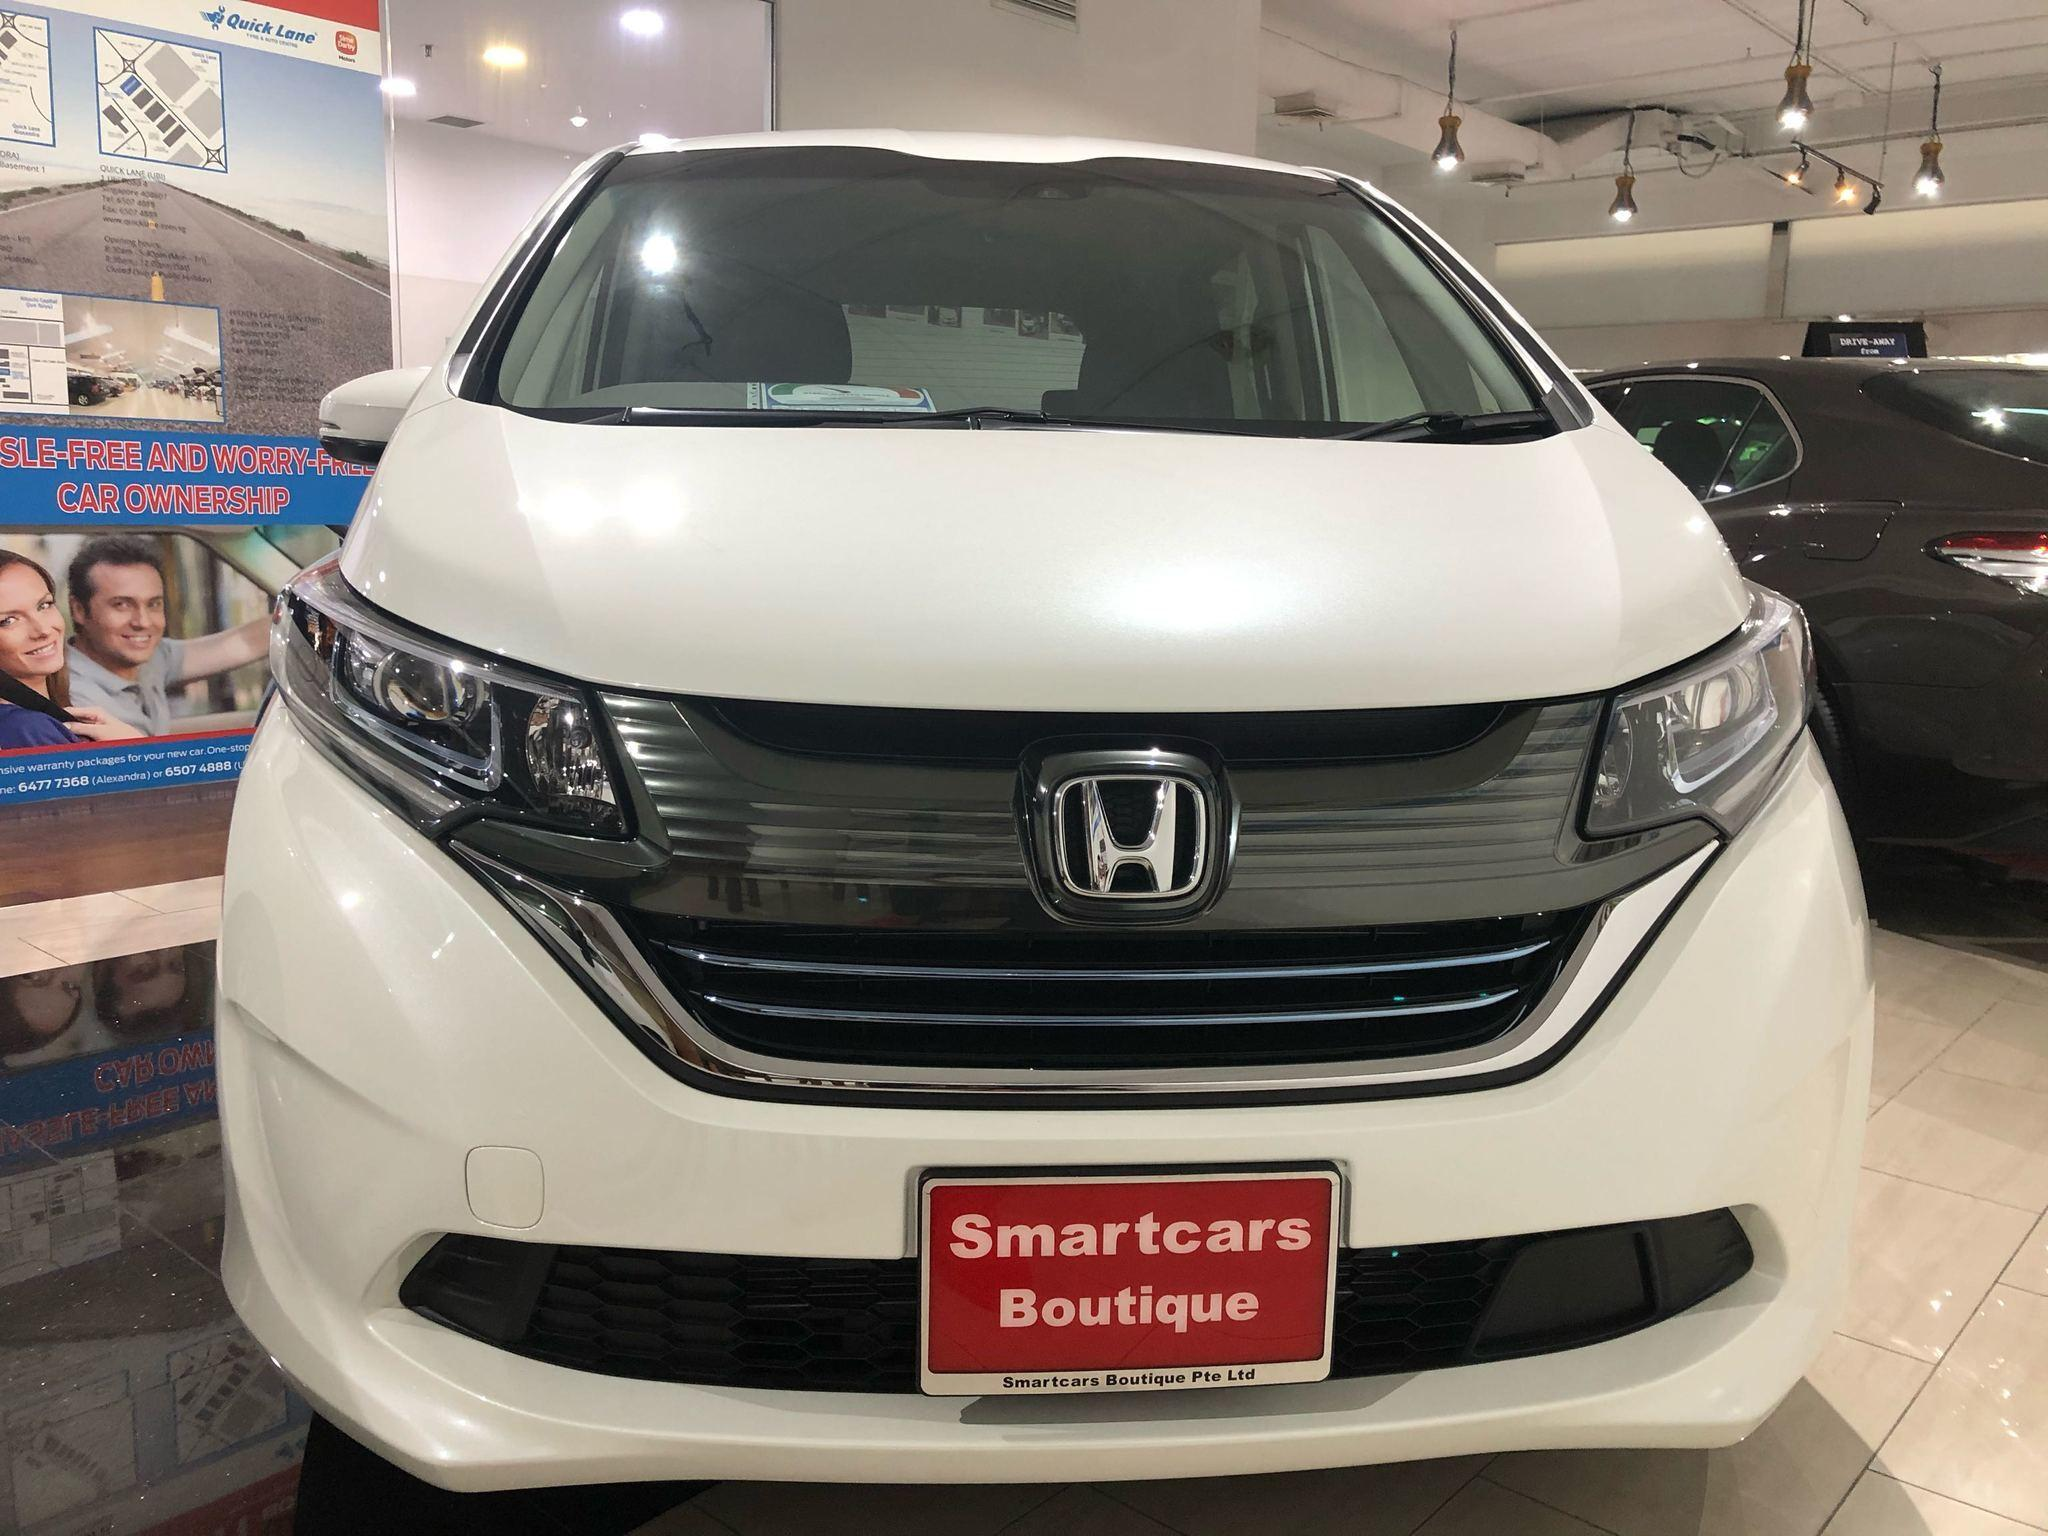 Honda Freed 1.5 G 7-Seater Honda Sensing (A)